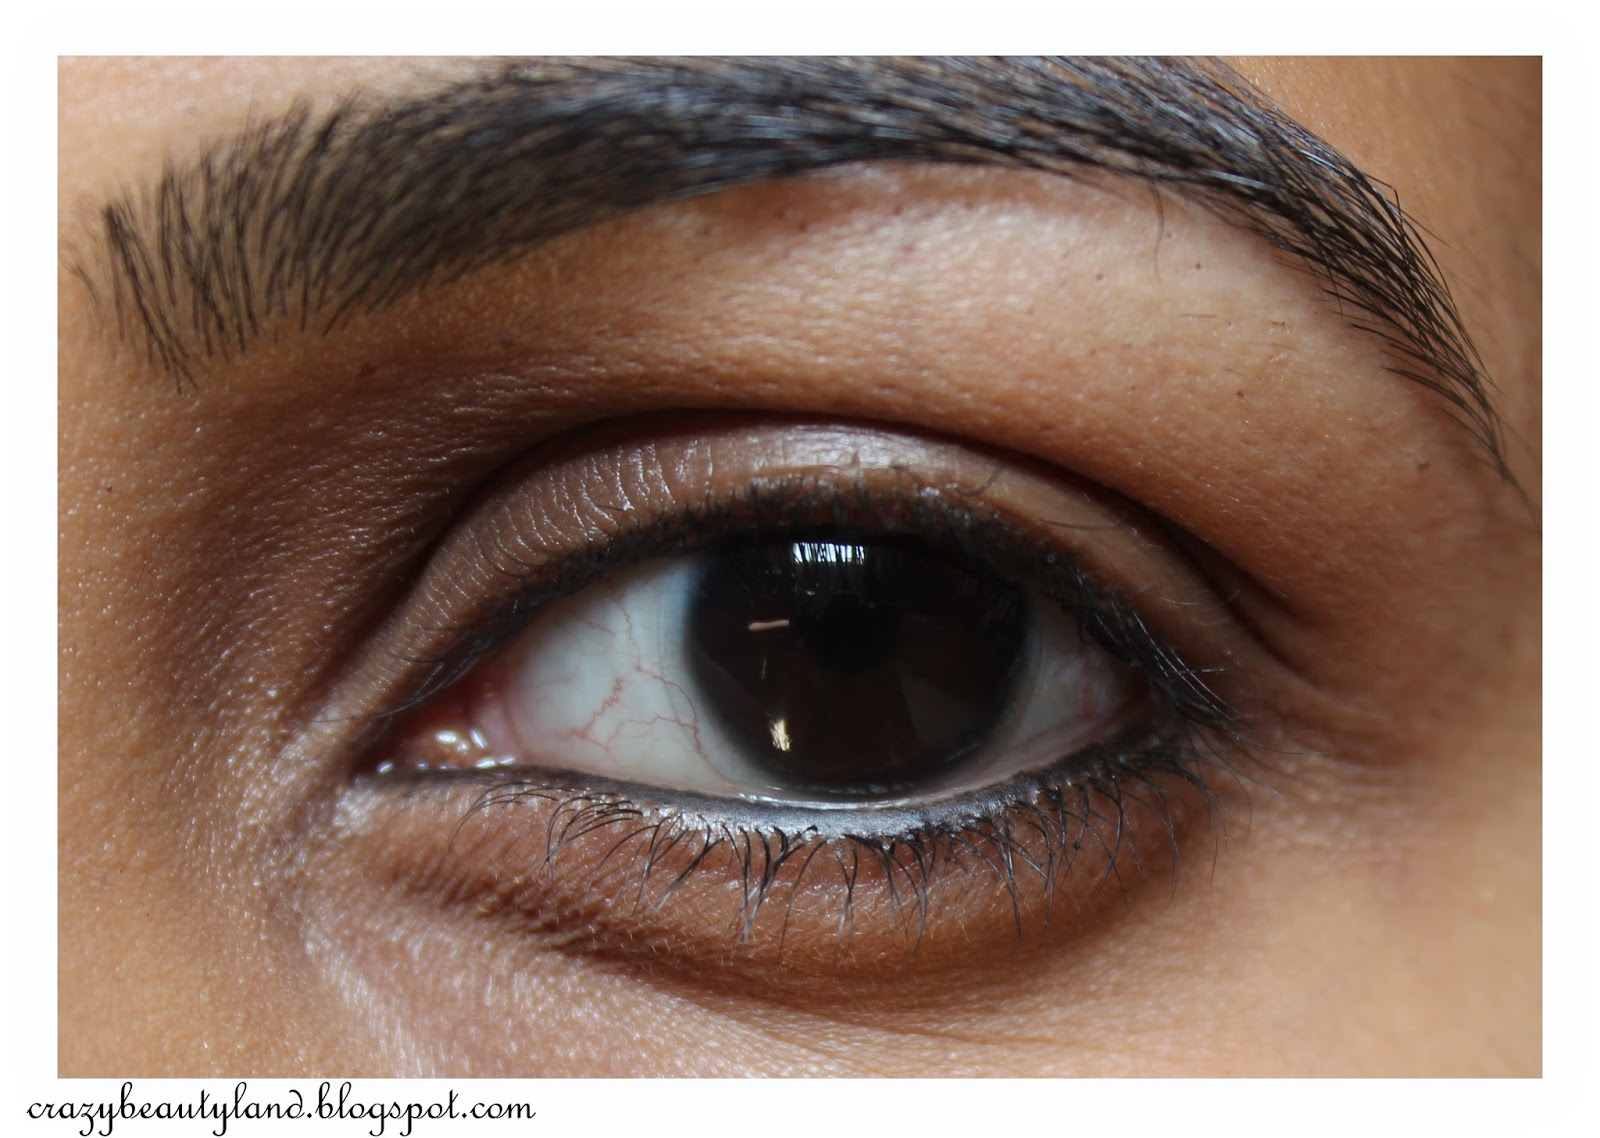 Lakme Eyeconic 10 Hr Kajal in Brown- Review,Price, Swatches, Photos, EOTD, how to use, smoky eye look, smokey brown eyes, everyday makeup, buy online in india